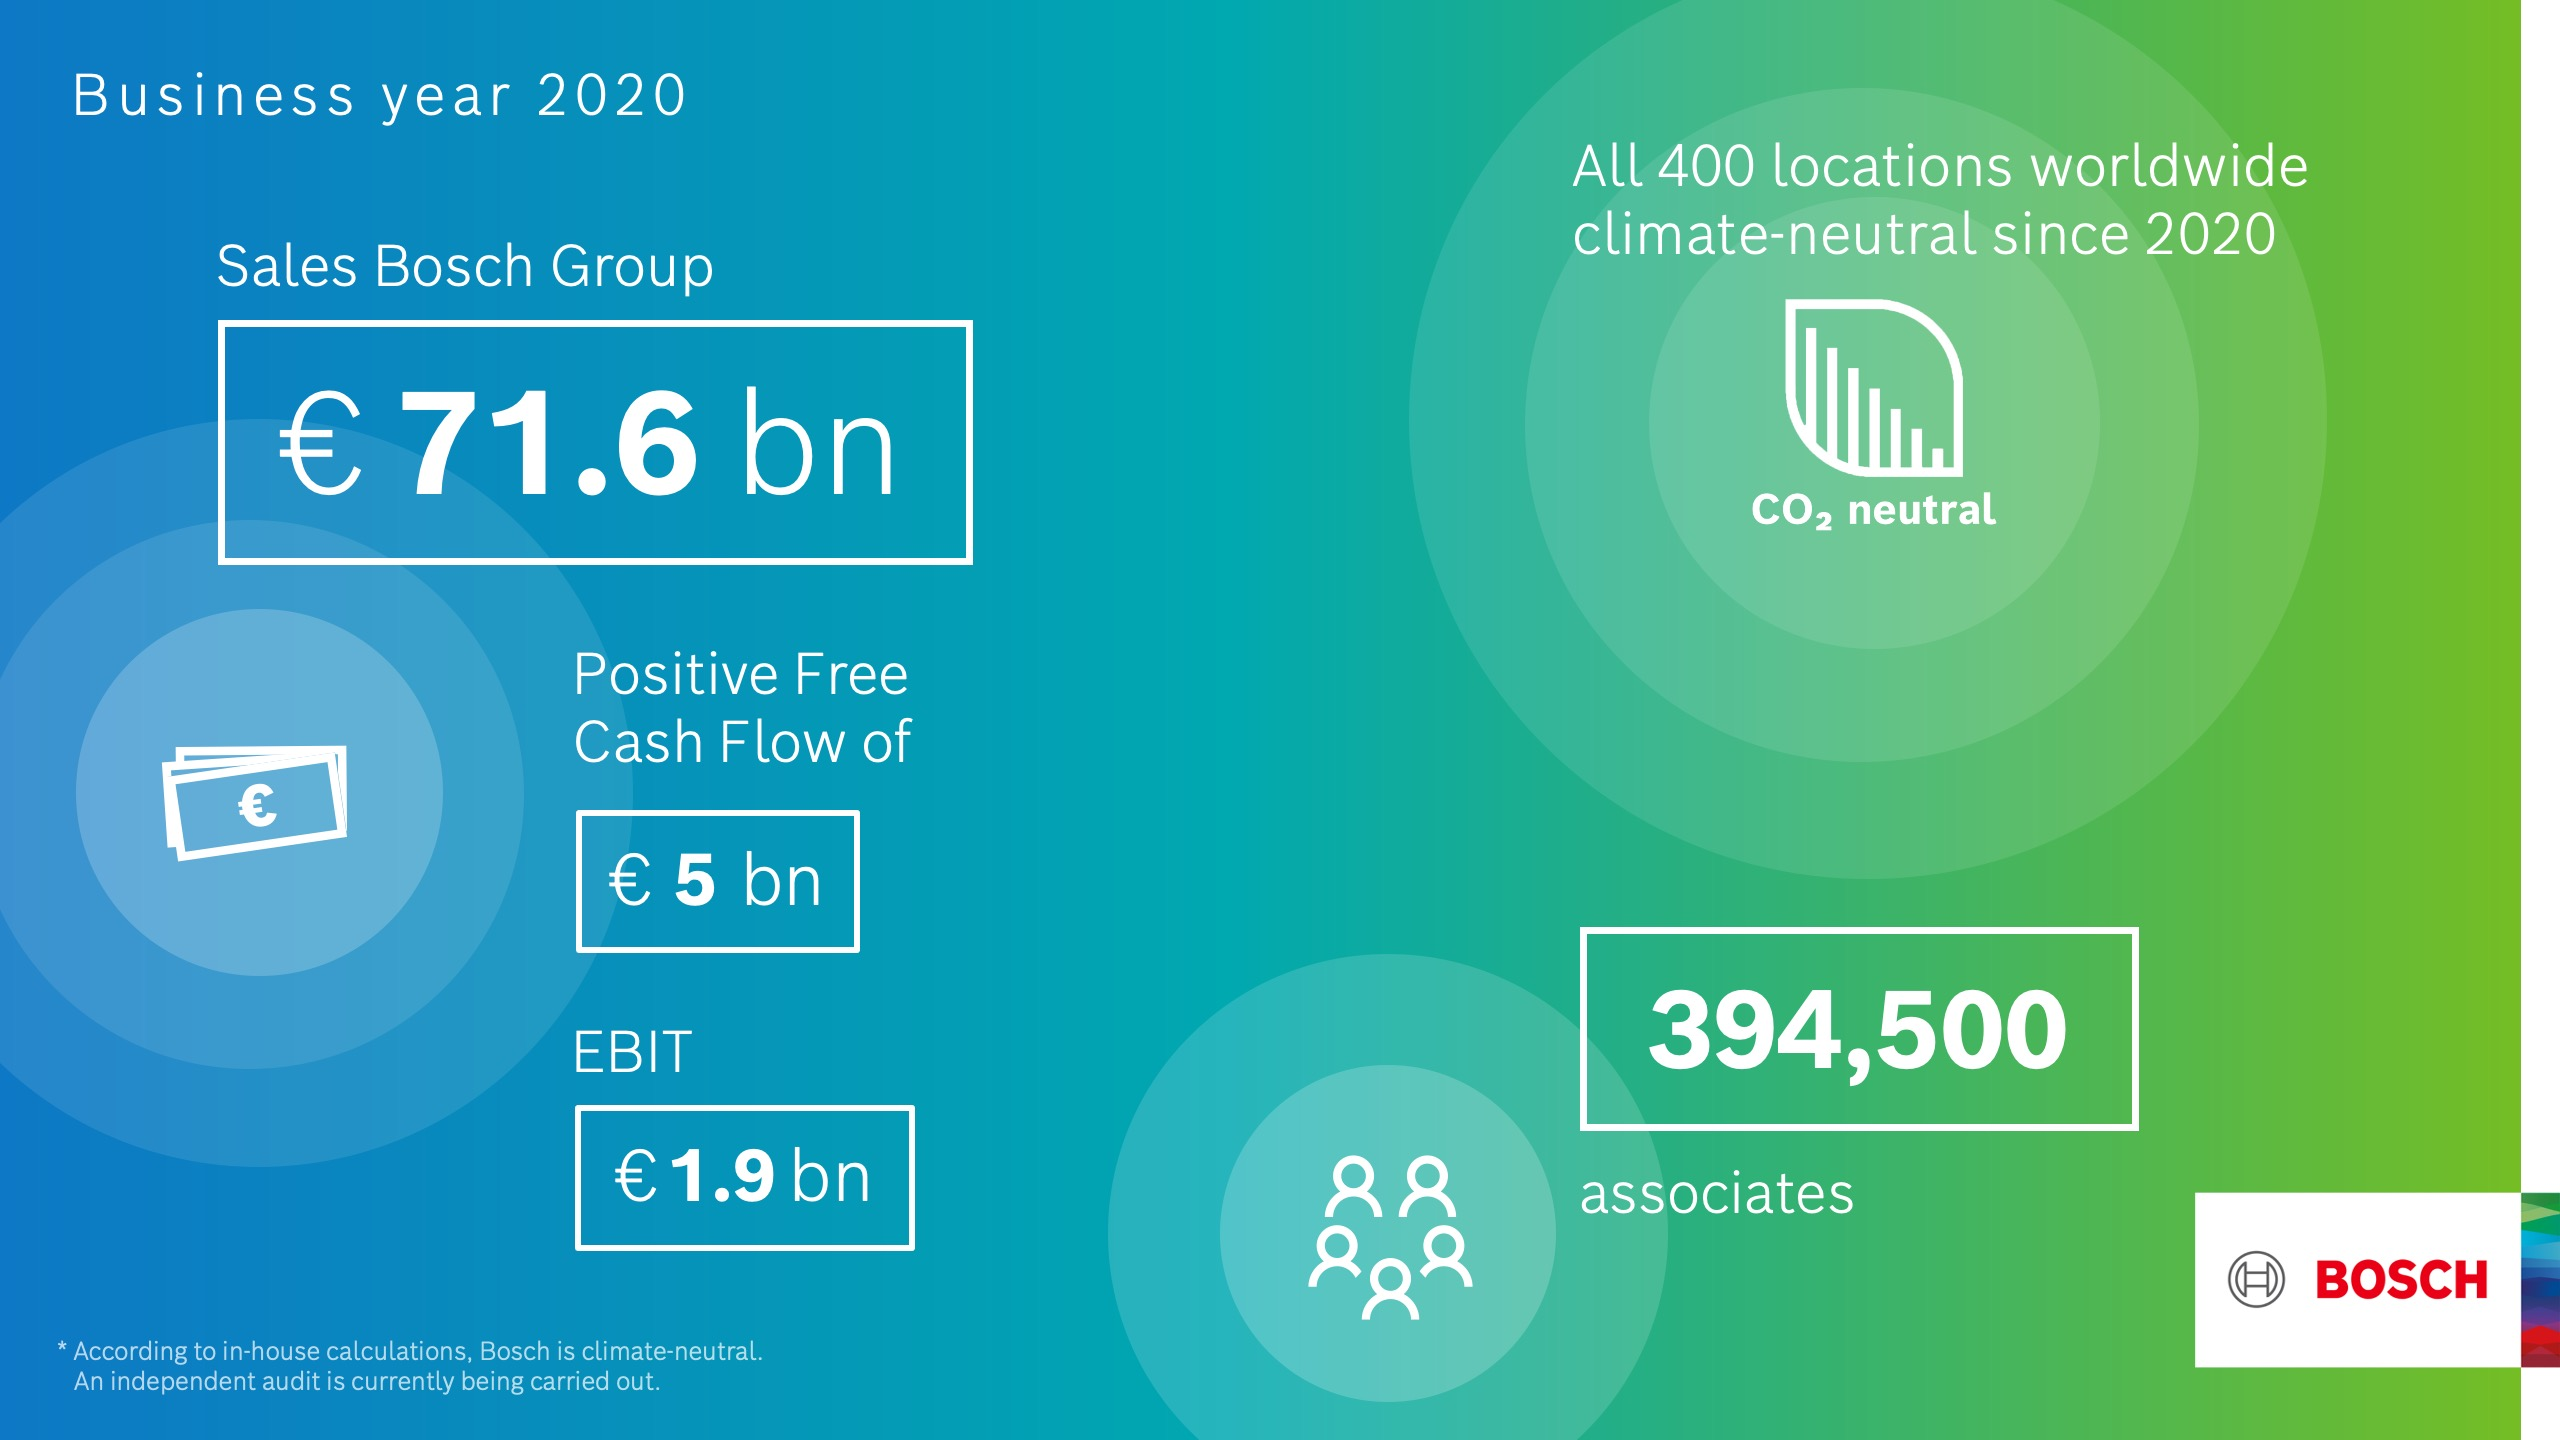 Bosch: preliminary business figures for 2020